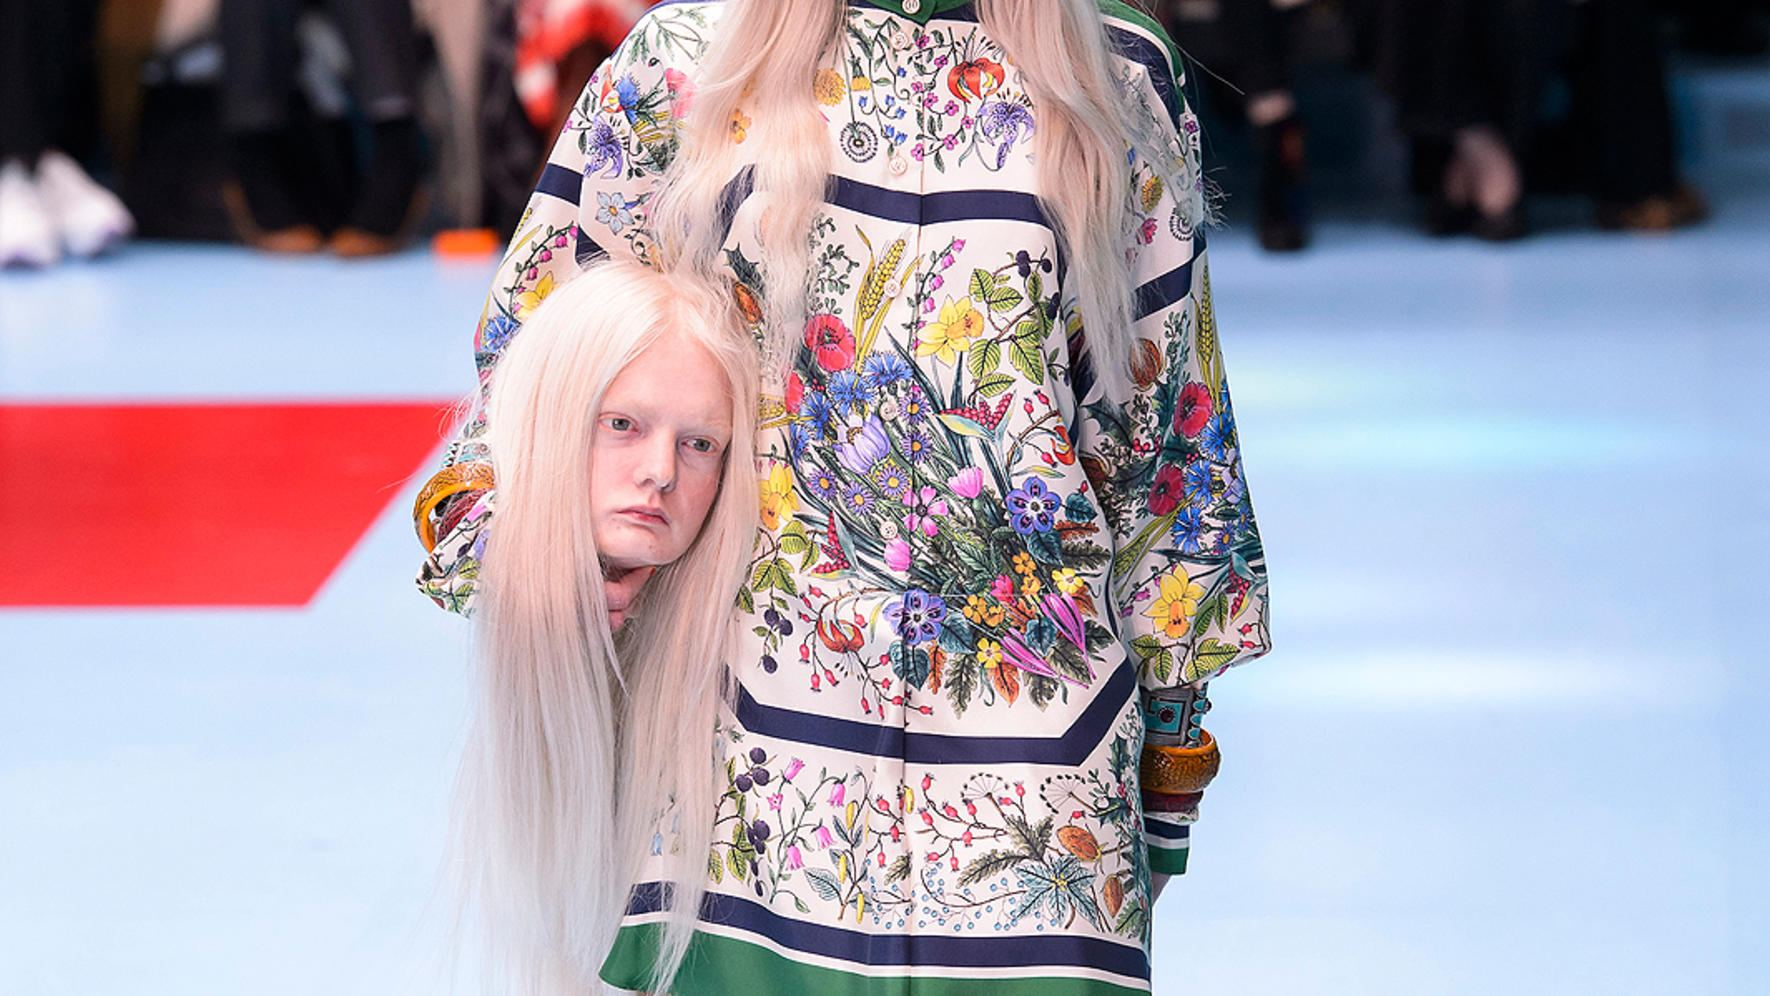 Gucci Herbst/Winter 2018 in Mailand